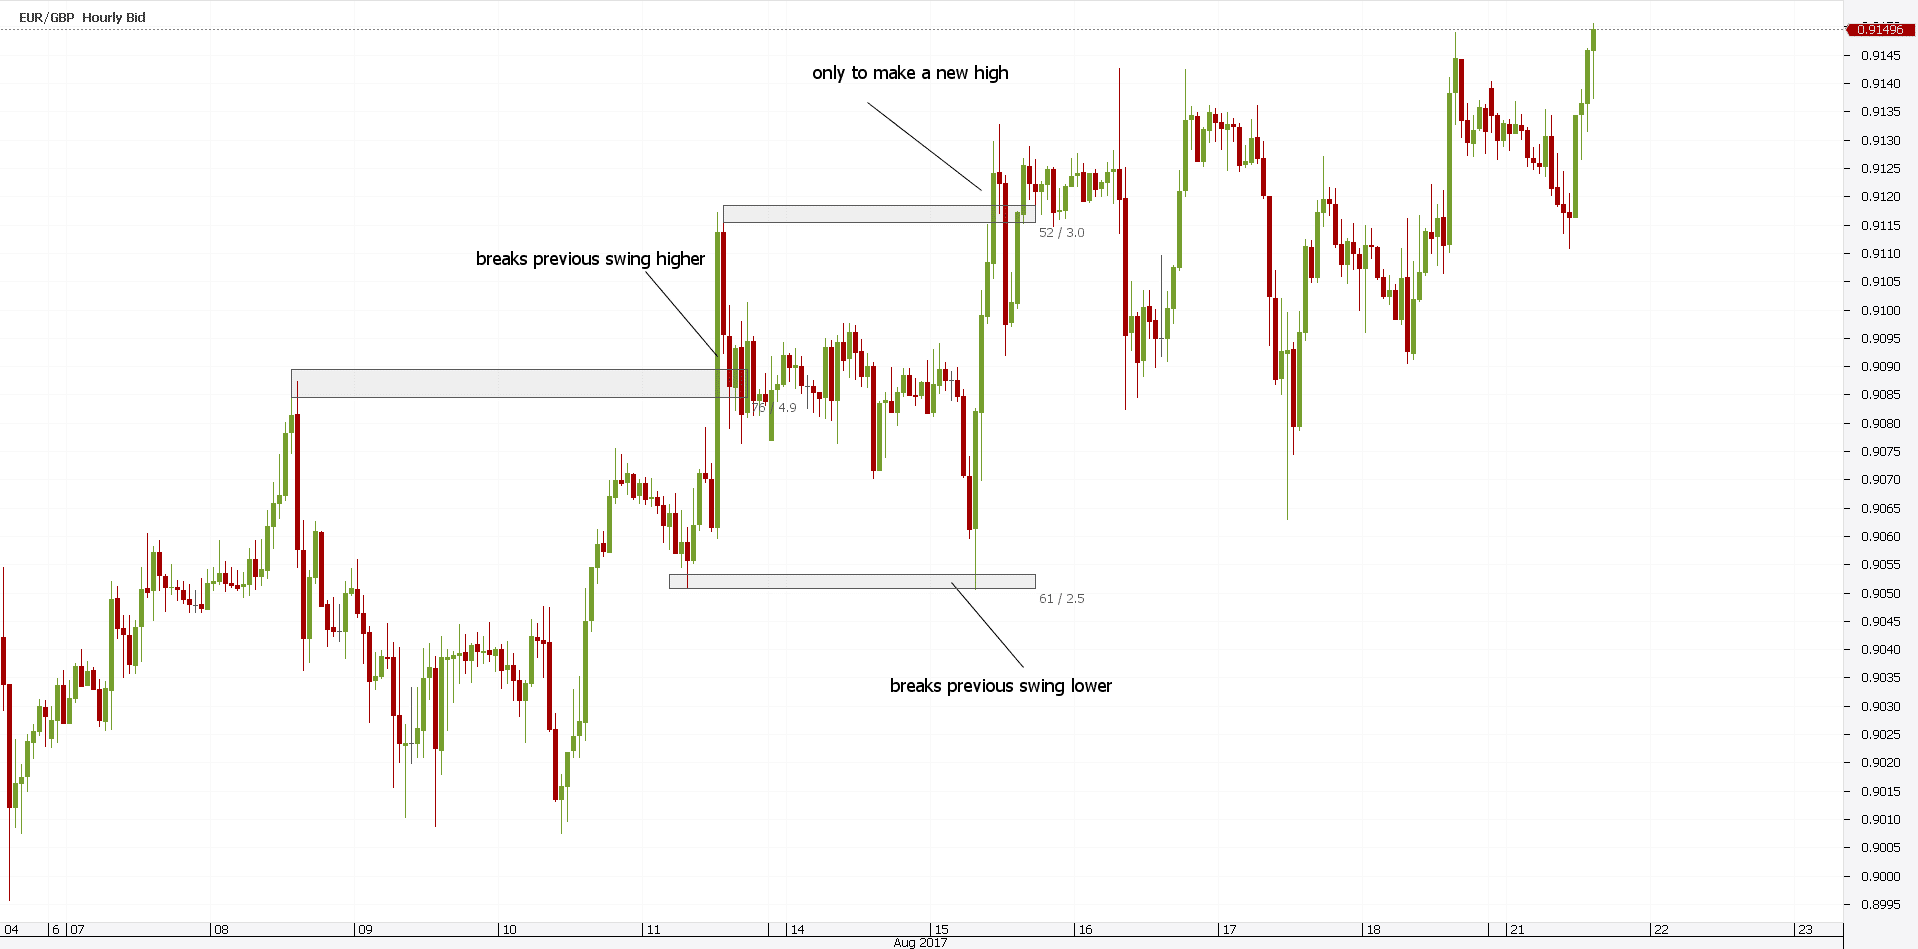 Whipsaw Forex Trading: Fakeout & False Breakout Pattern - ForexBoat